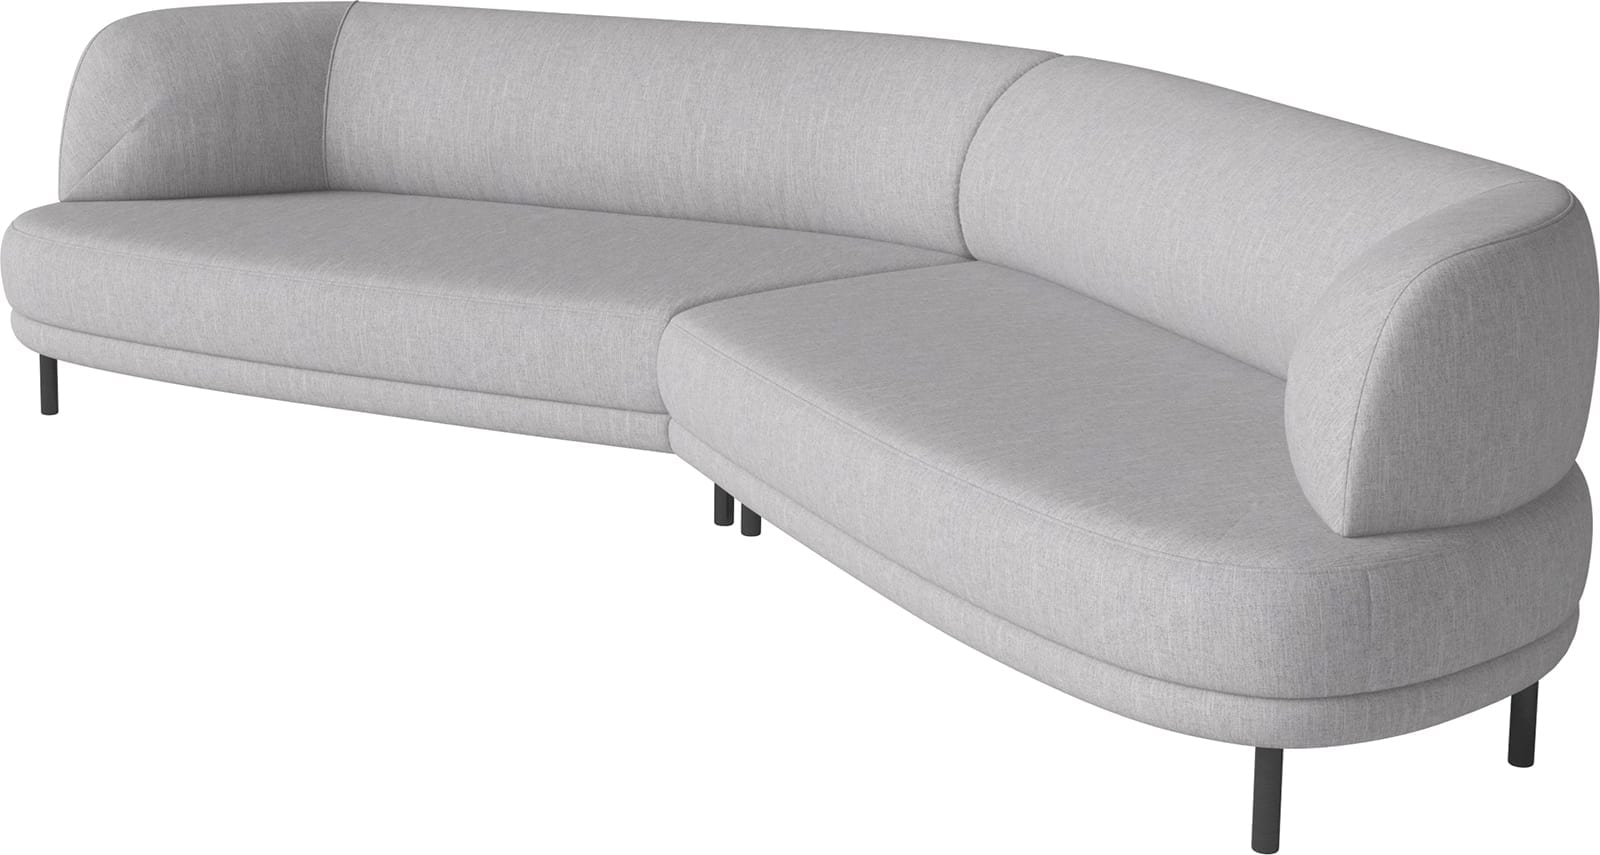 5 Seater Sofa With Chaise